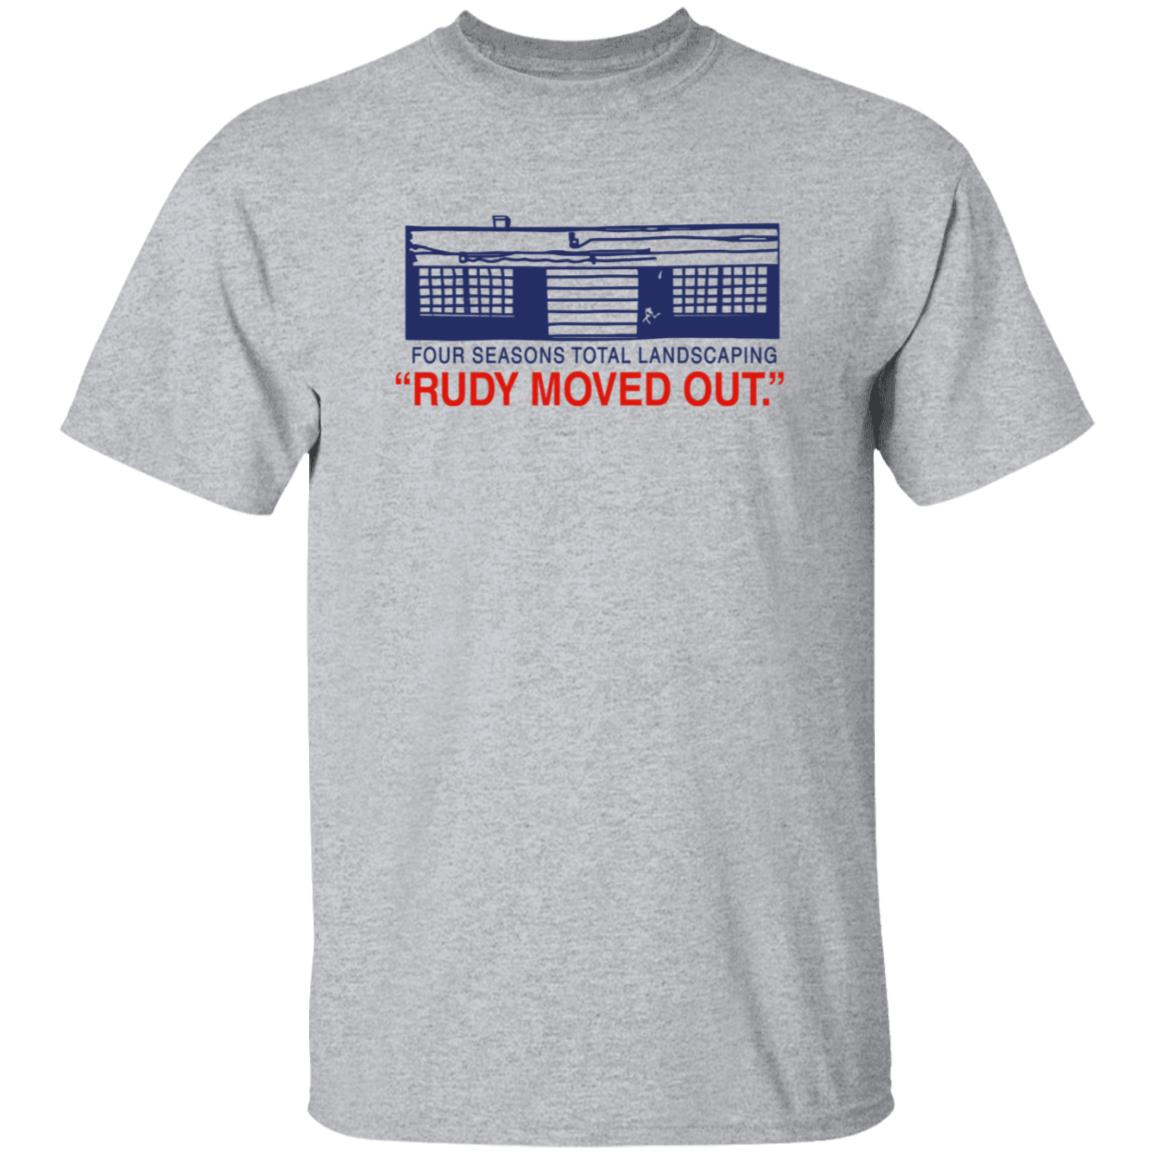 Four Seasons Total Landscaping Merch Rudy Moved Out Fstl Tee Shirt Philly Drinkers